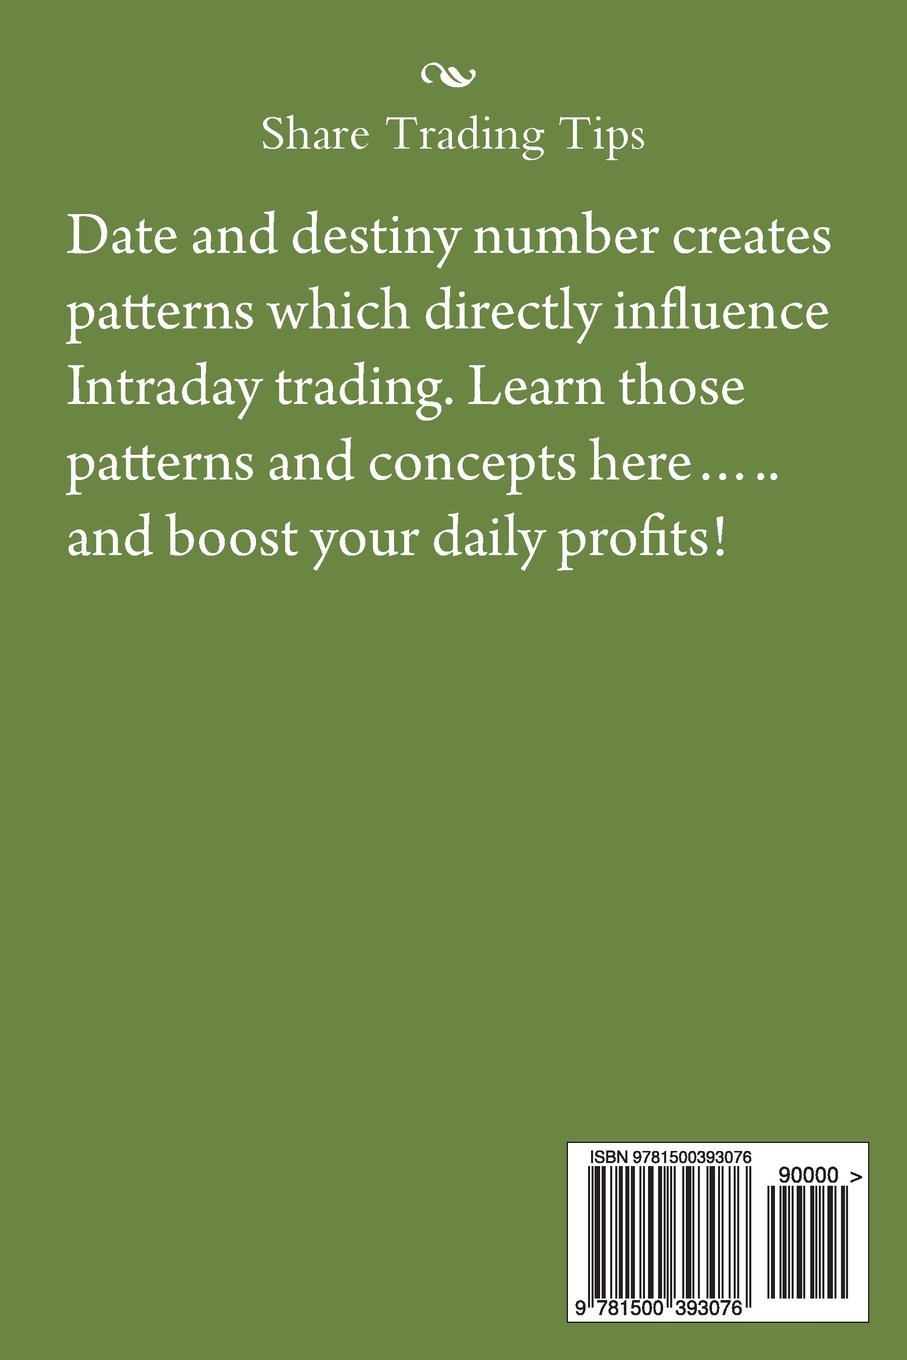 Share Trading Tips